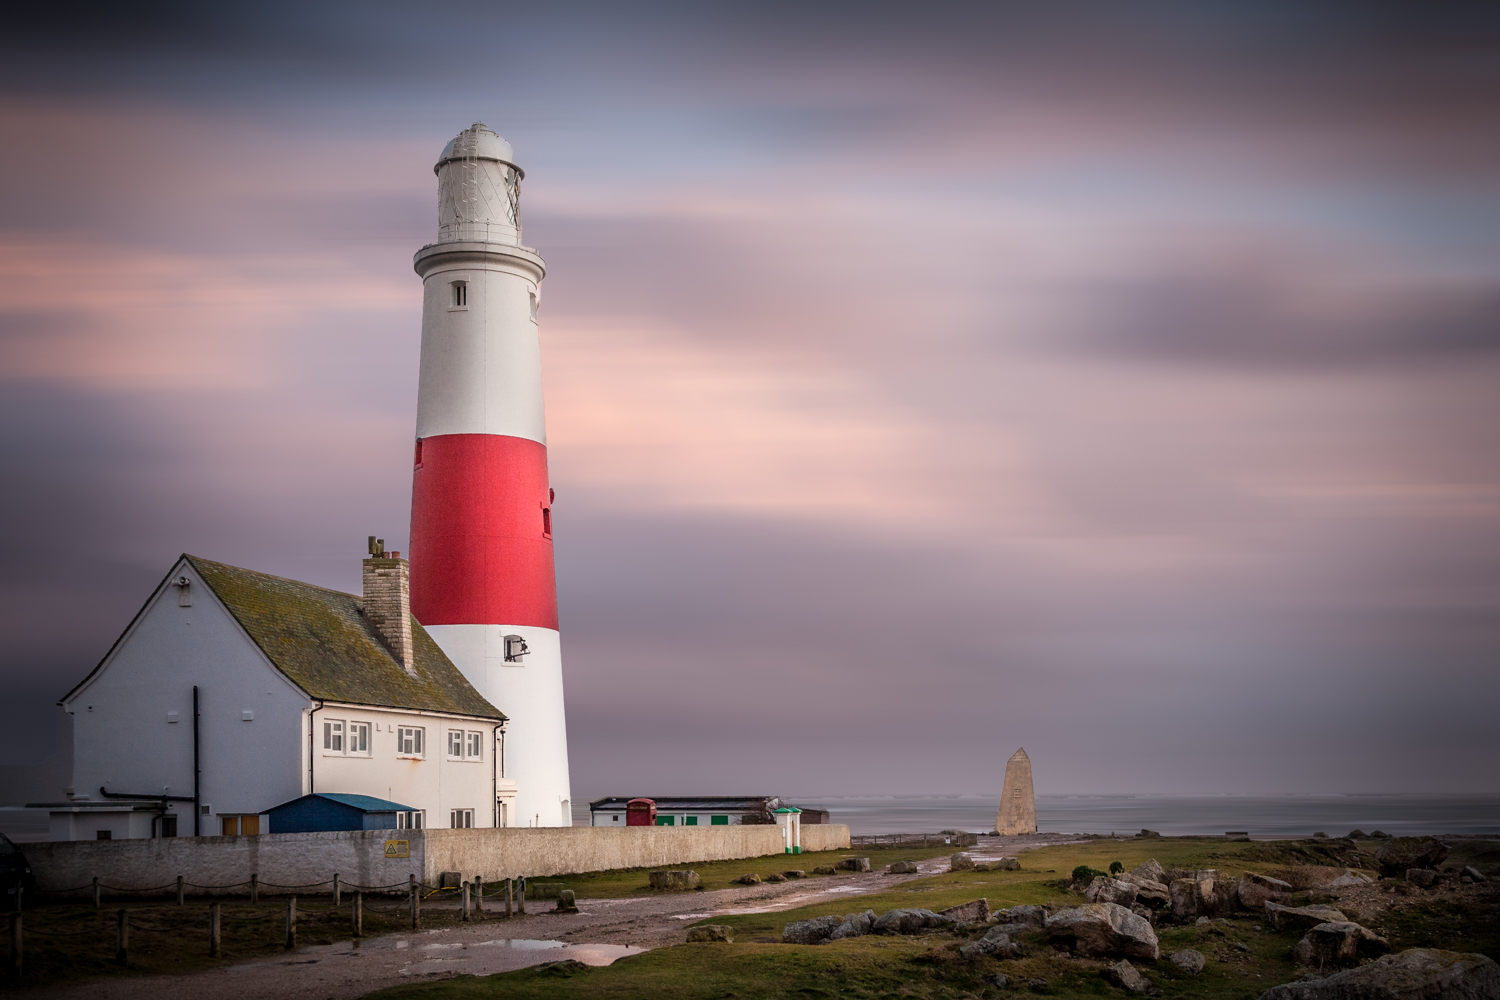 Portland Bill Lighthouse, Portland, Dorset